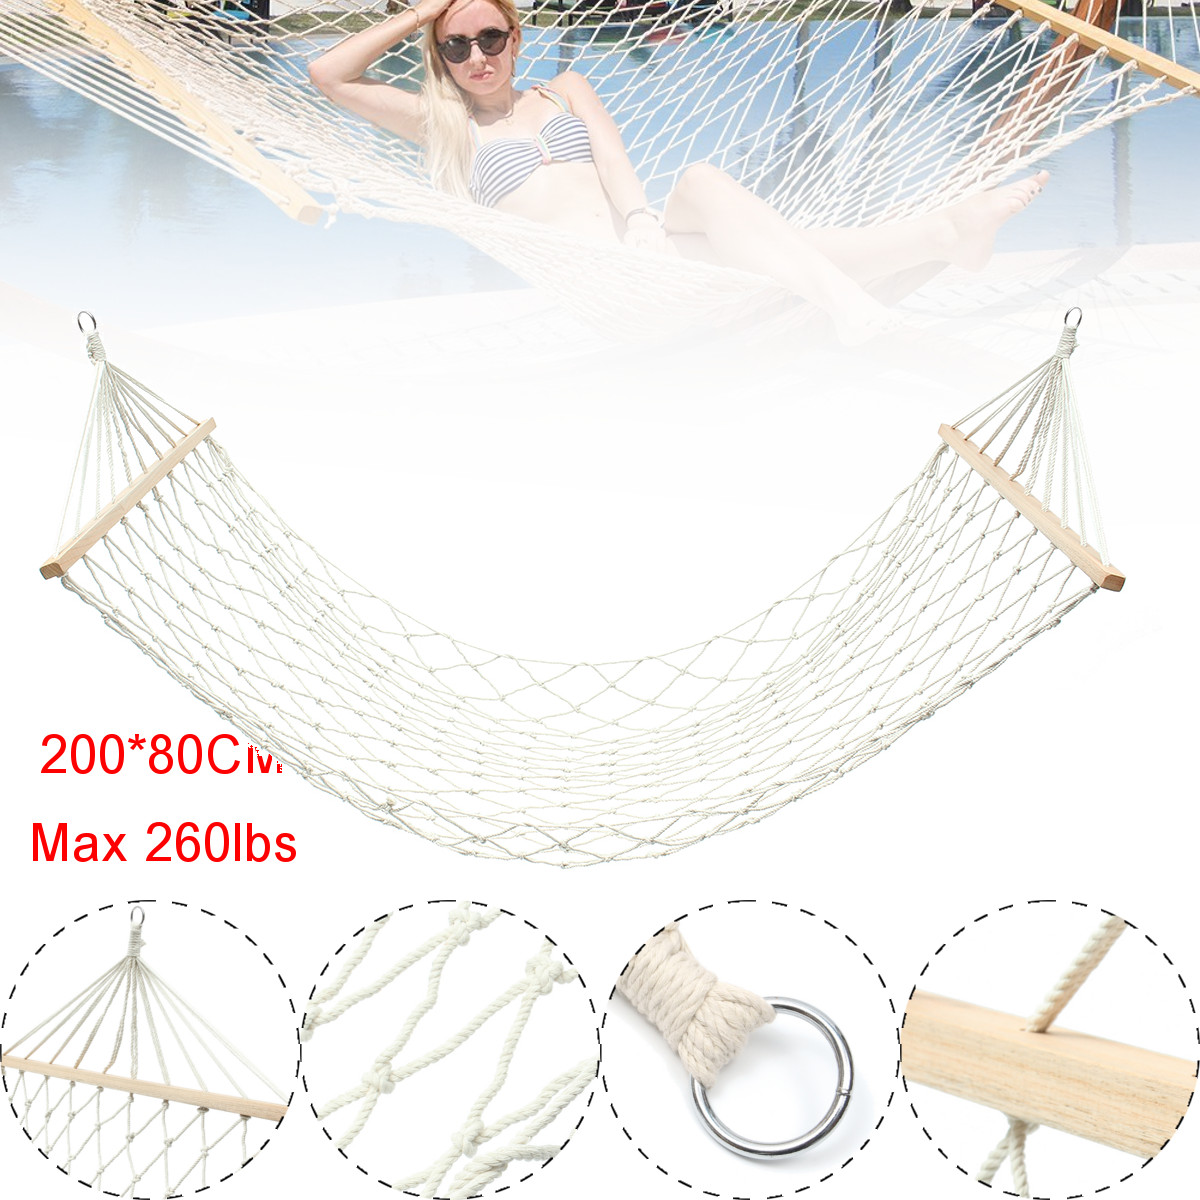 200 X 80cm White Outdoor Mesh Cotton Rope Swing Hammock Hanging On The Porch Or On A Beach